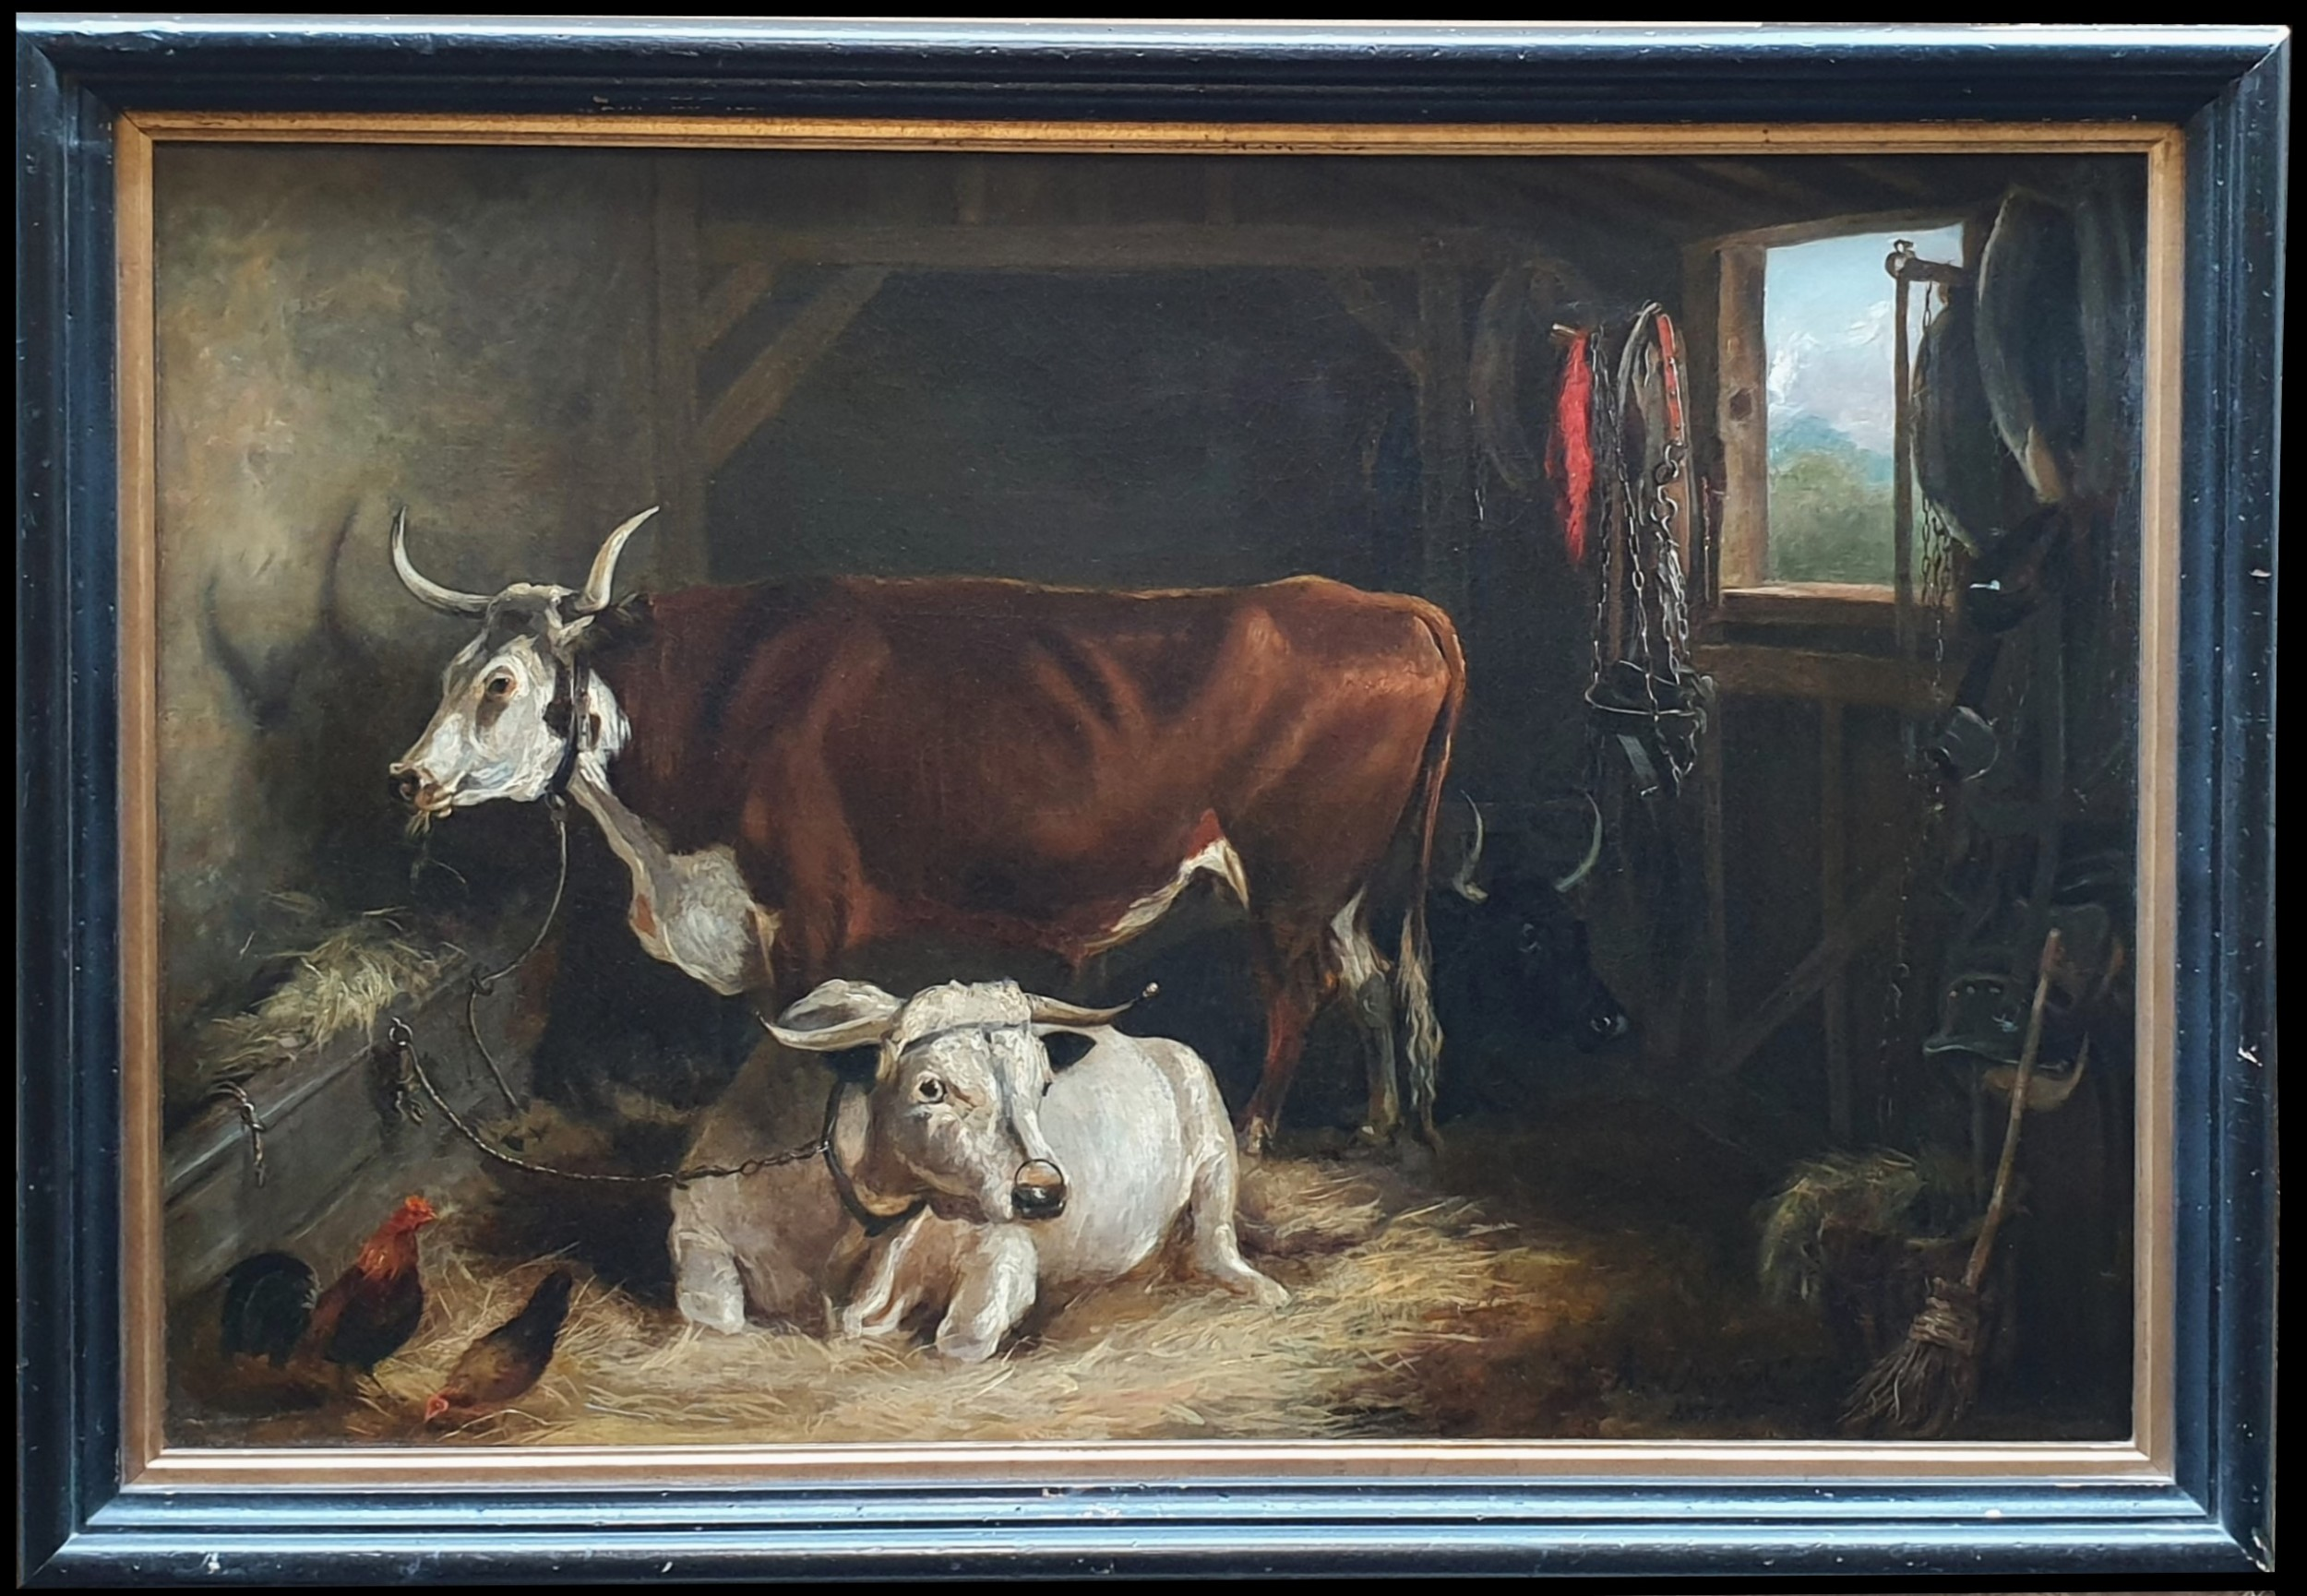 'bulls in a stable' by william henry davis oil on canvas framed signed and dated 1835